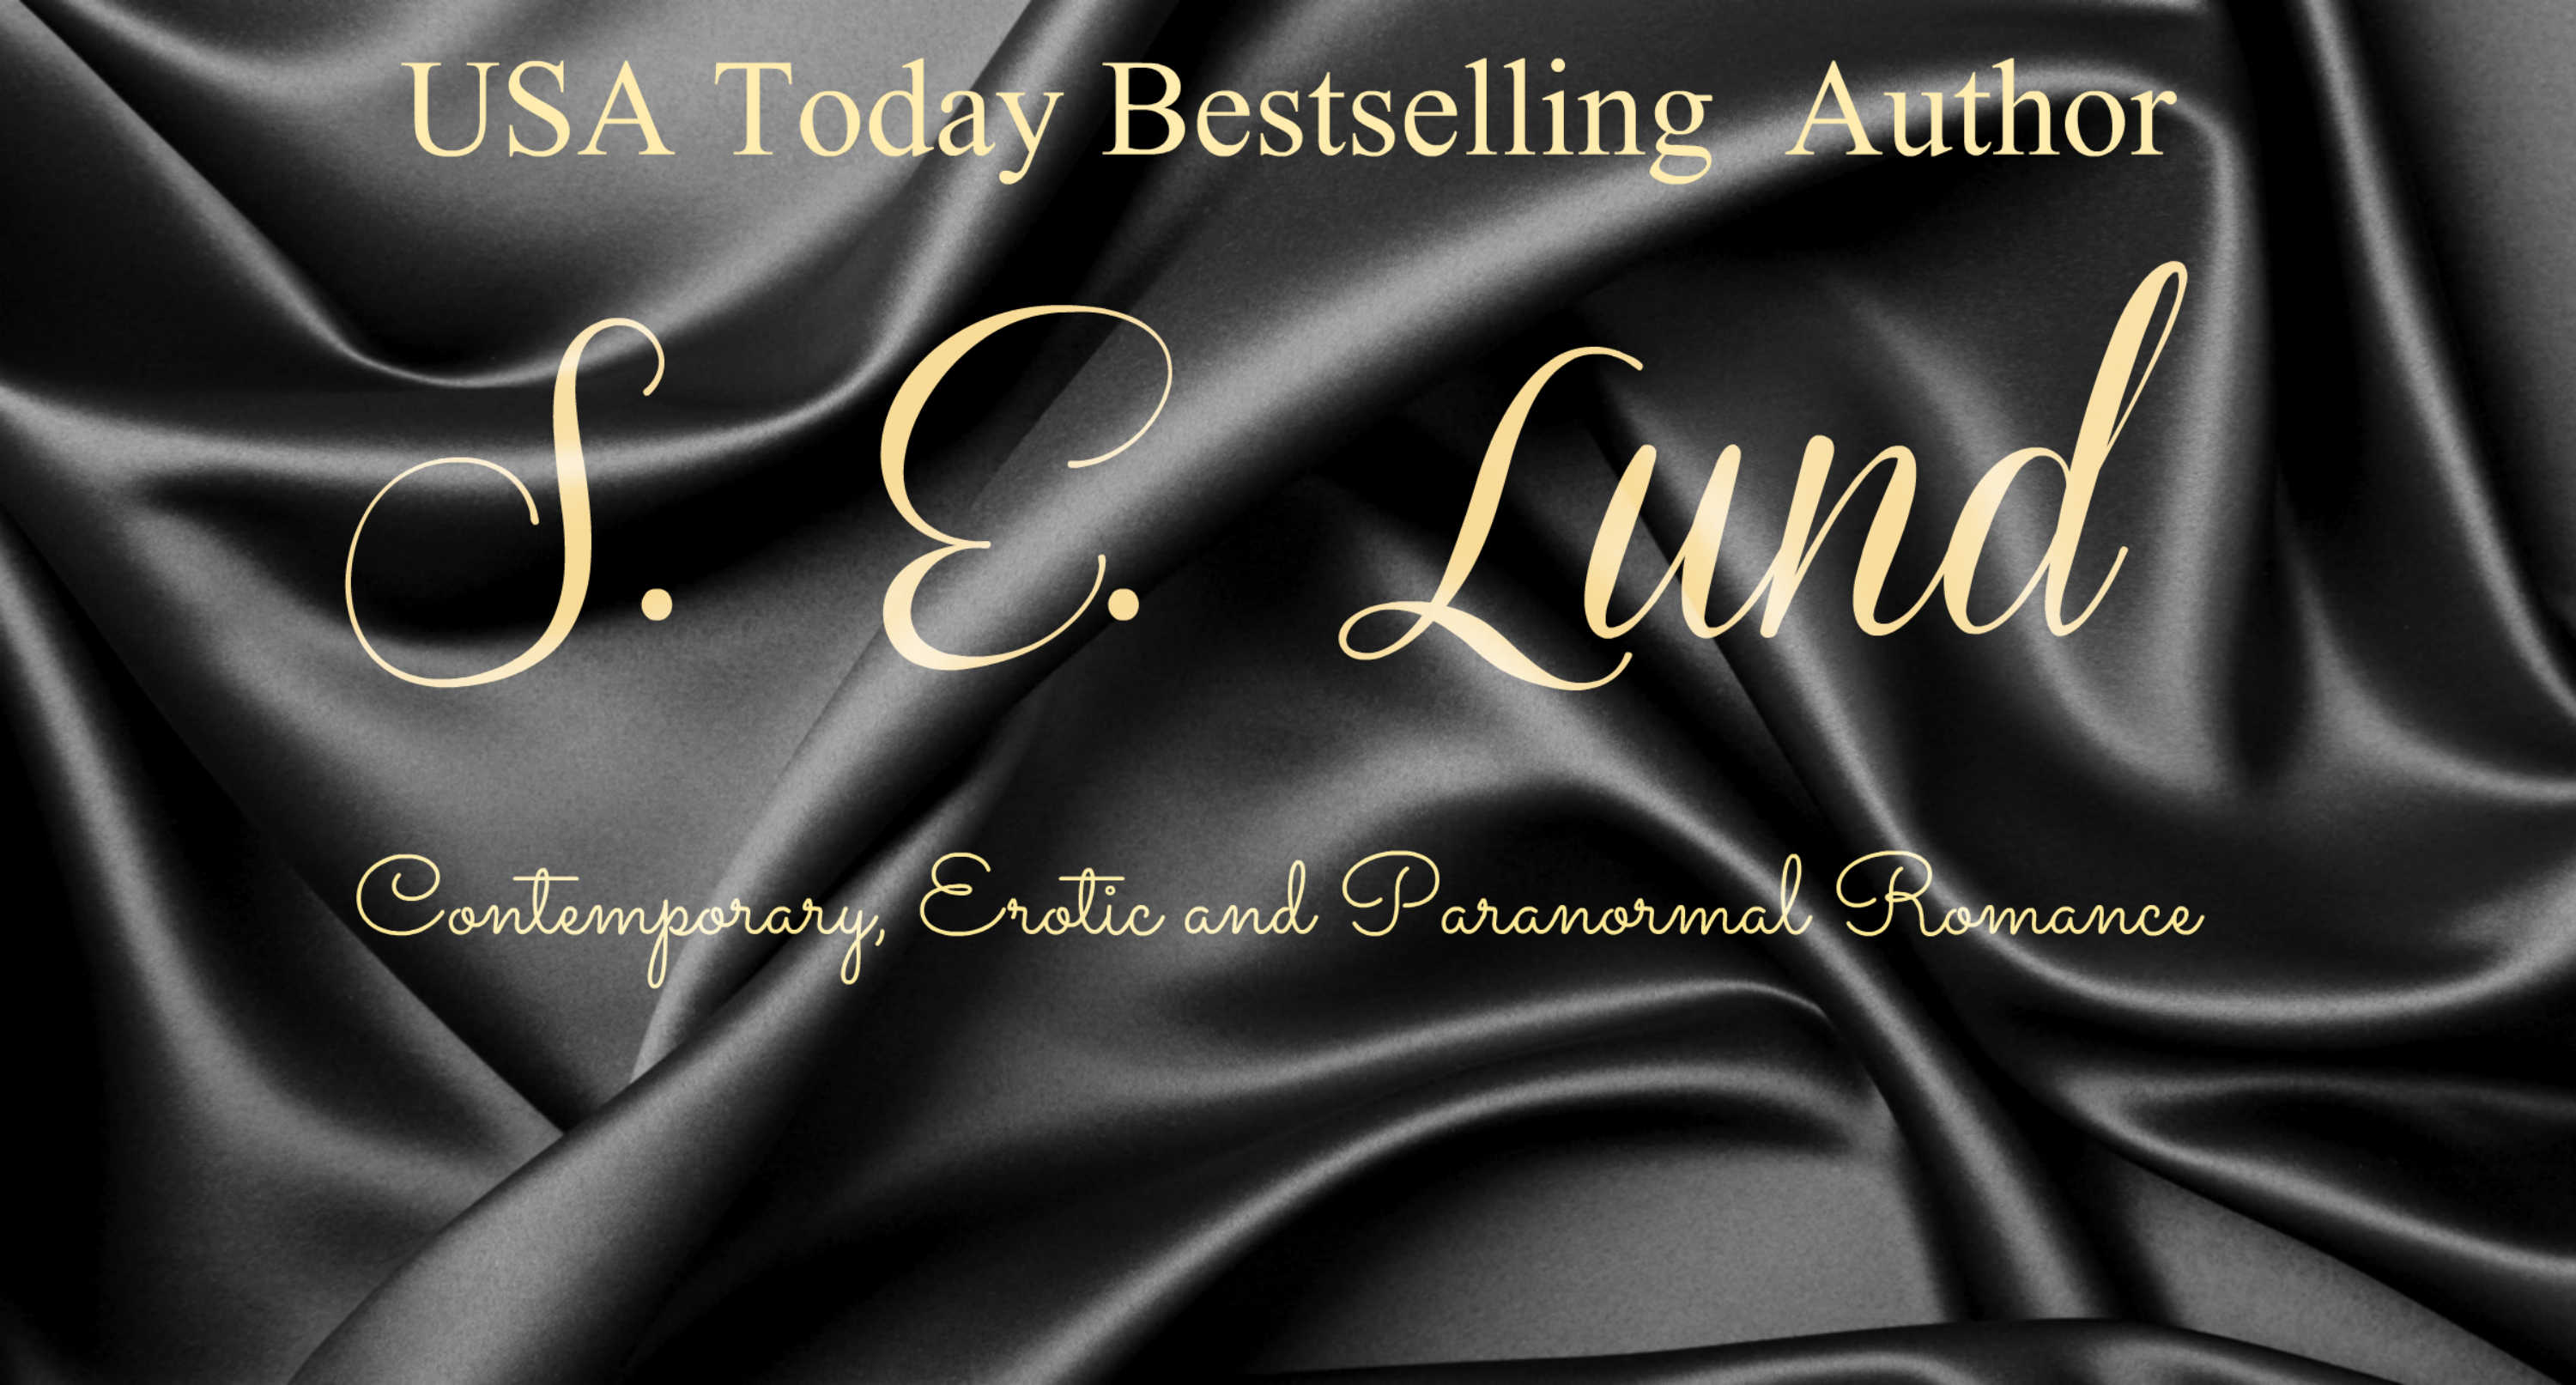 USA Today Bestselling Author S. E. Lund